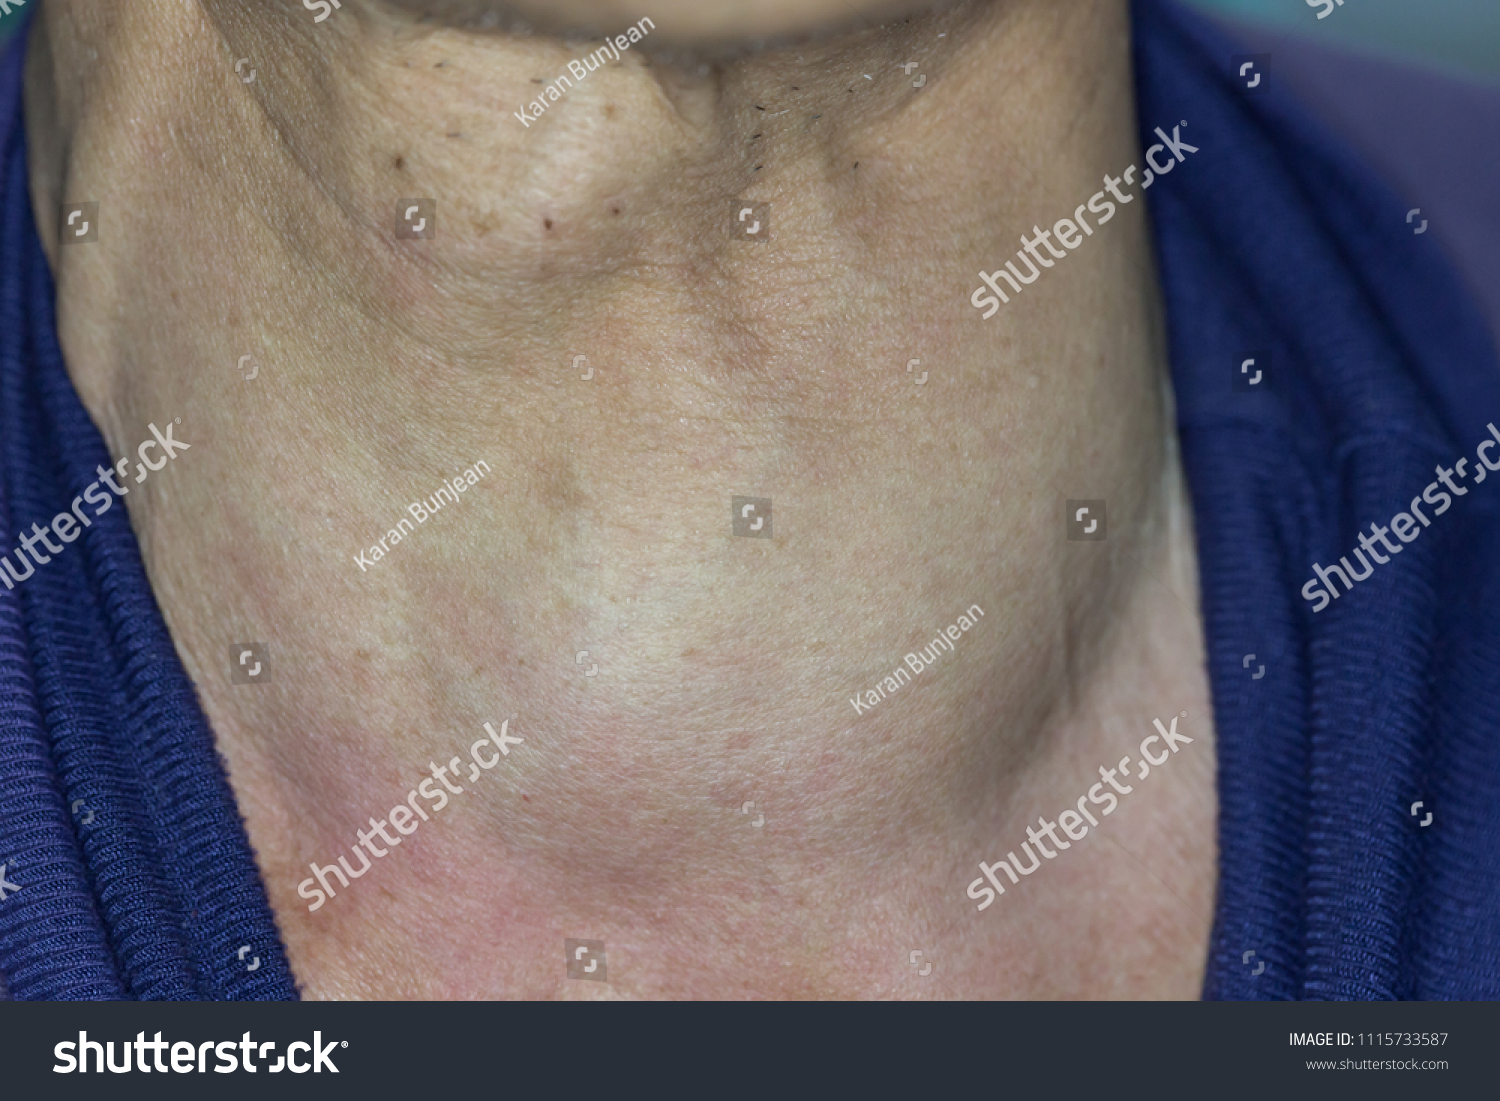 Zooming Closeup View Enlarged Thyroid Gland People Stock Image